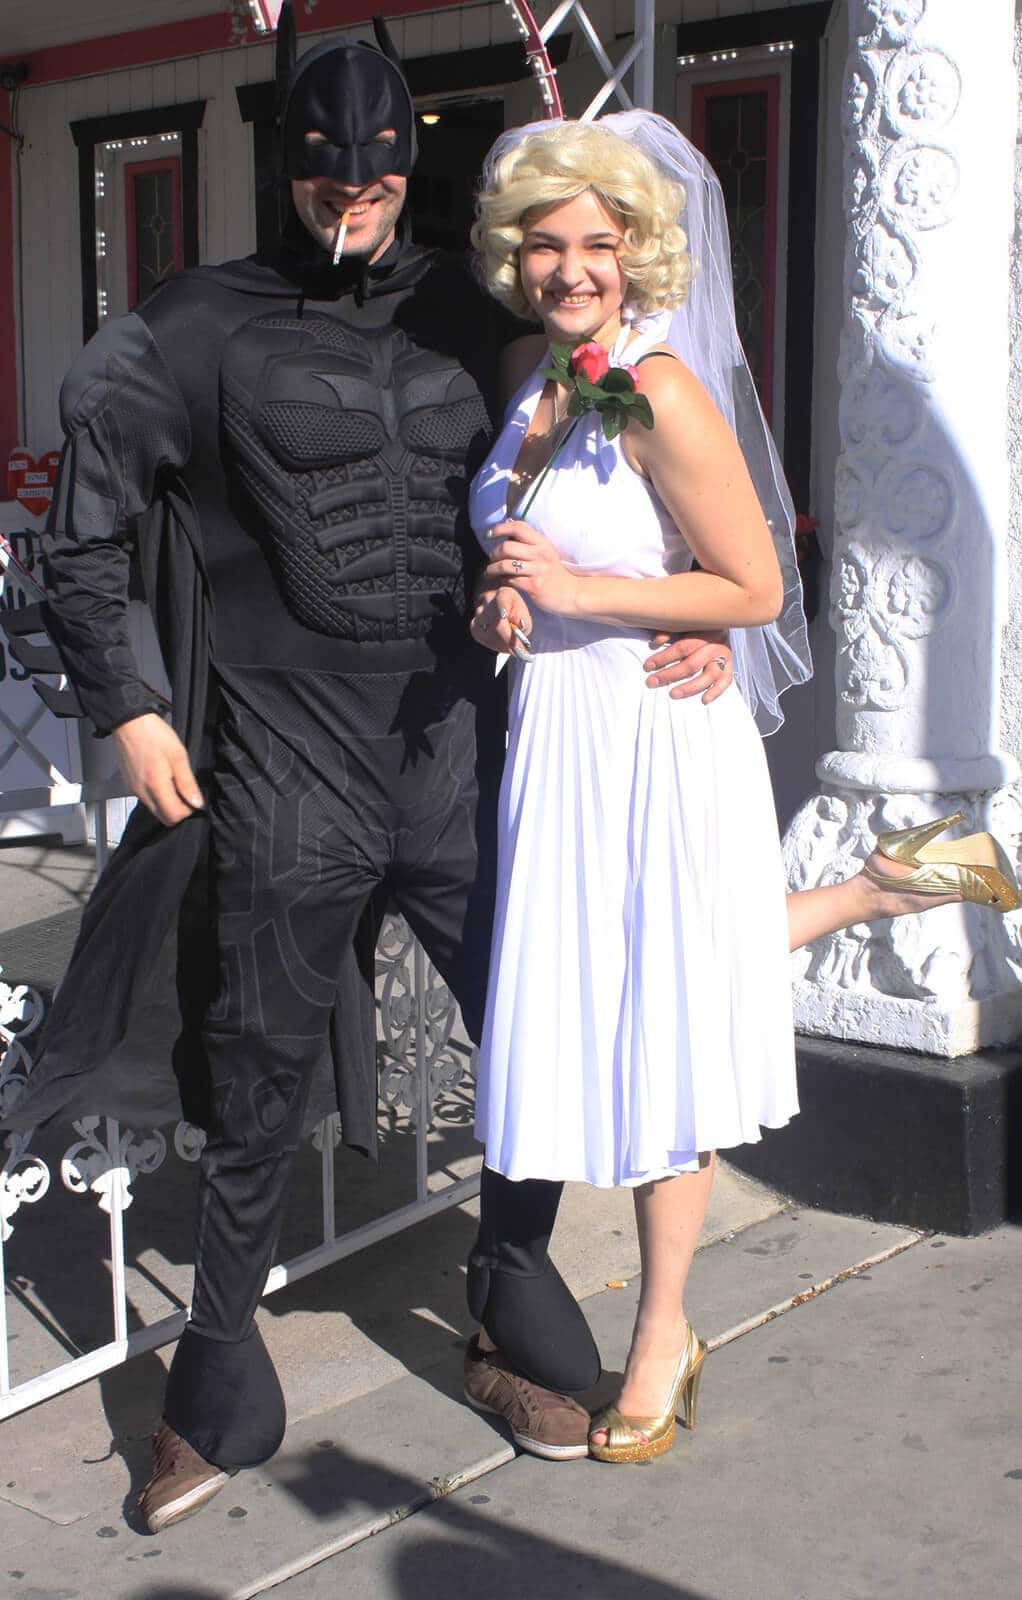 Bride and groom dressed as Batman and Marilyn Monroe